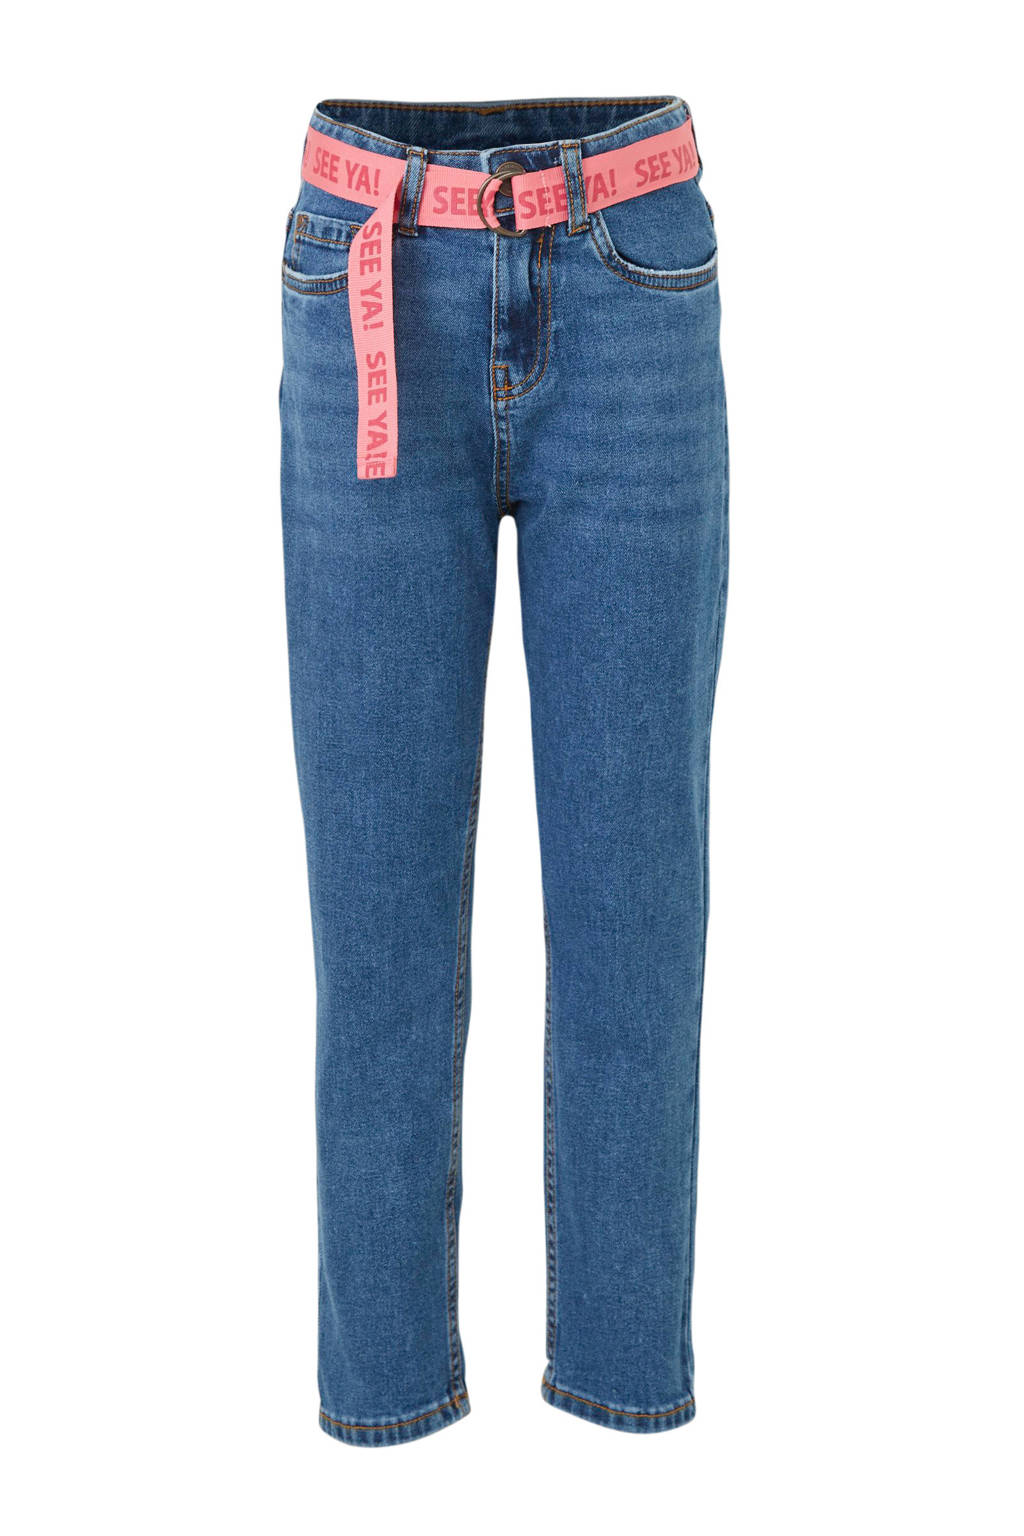 C&A Here & There regular fit jeans blauw, Blauw